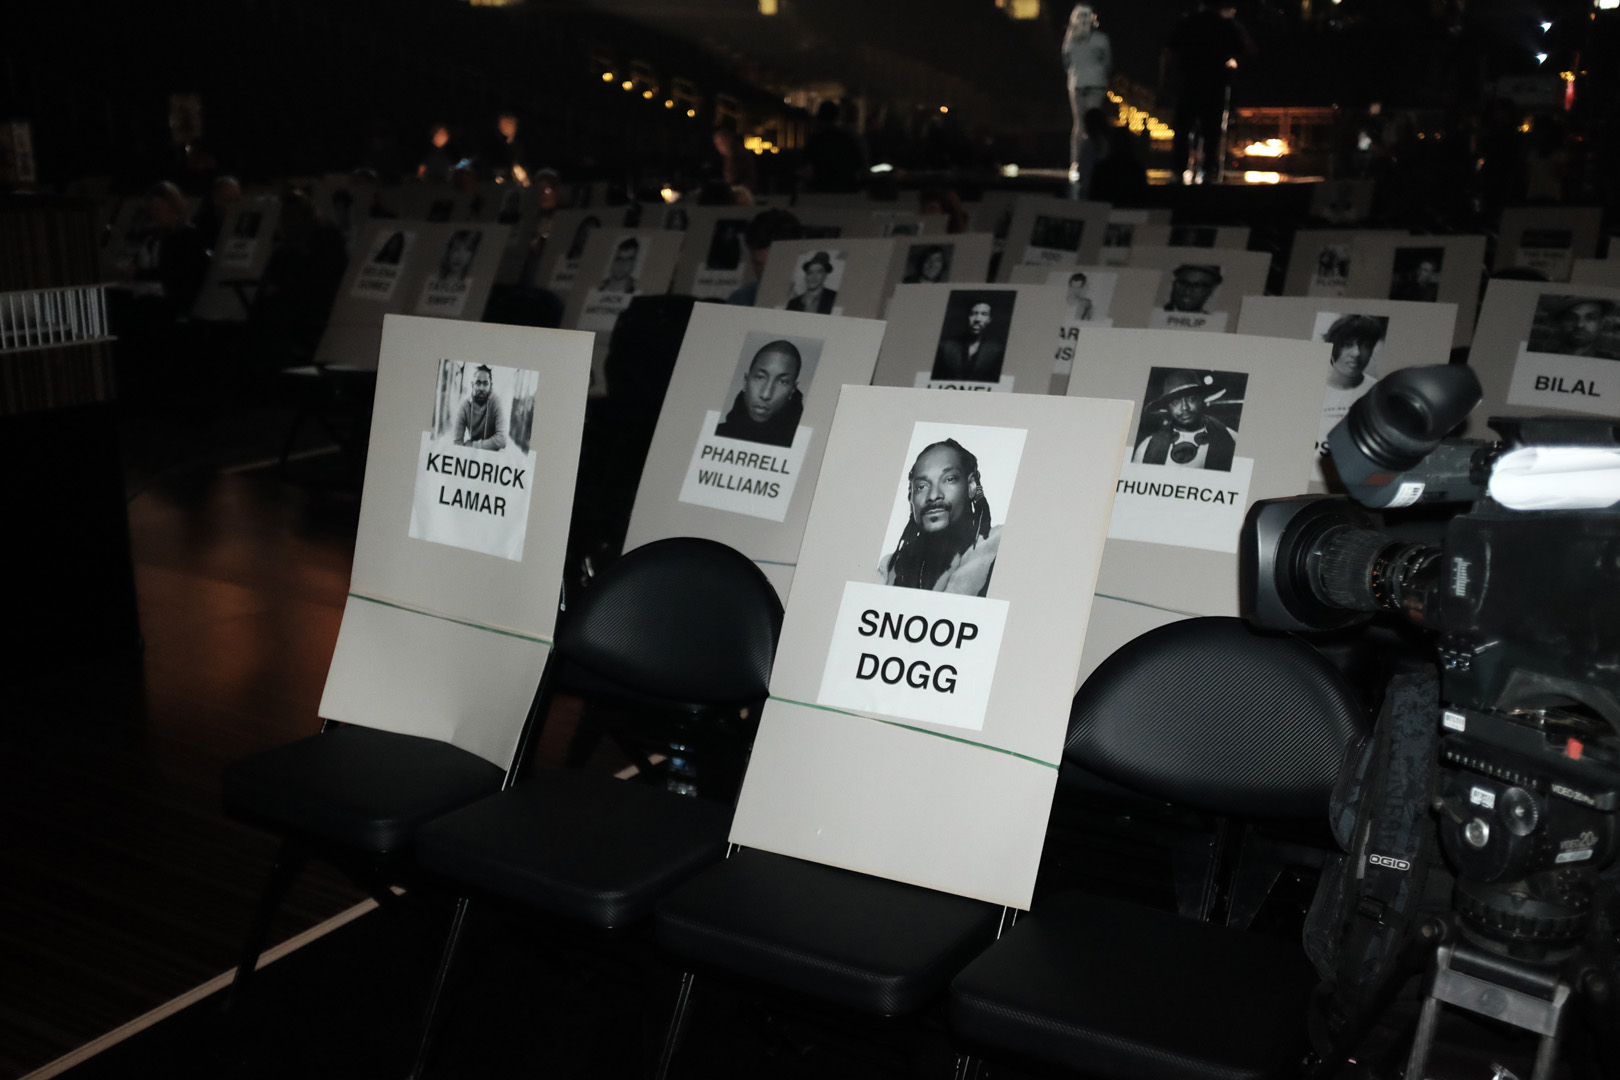 Kendrick Lamar and Snoop Dogg won't be seated far from Pharrell Williams.